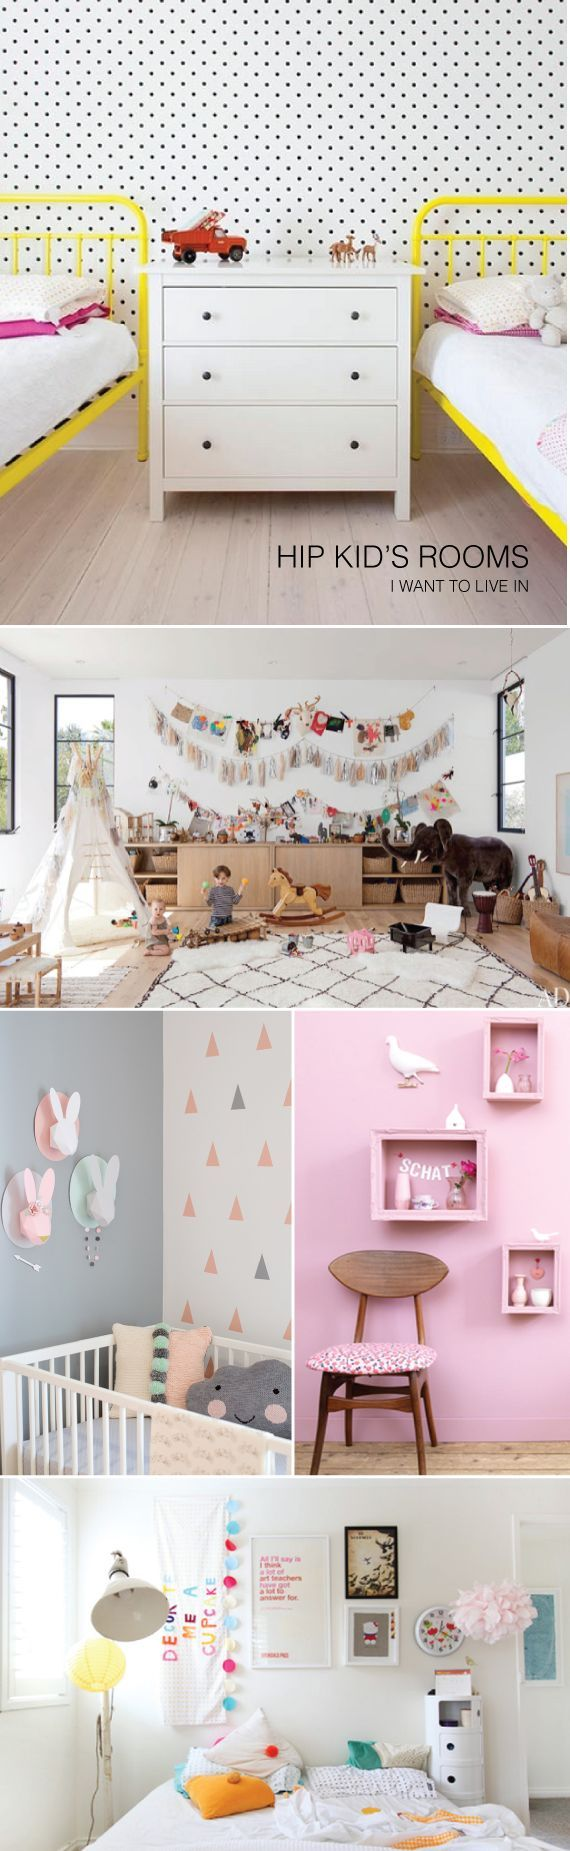 106 best KIDS WORLD images on Pinterest | Child room, Nursery ...